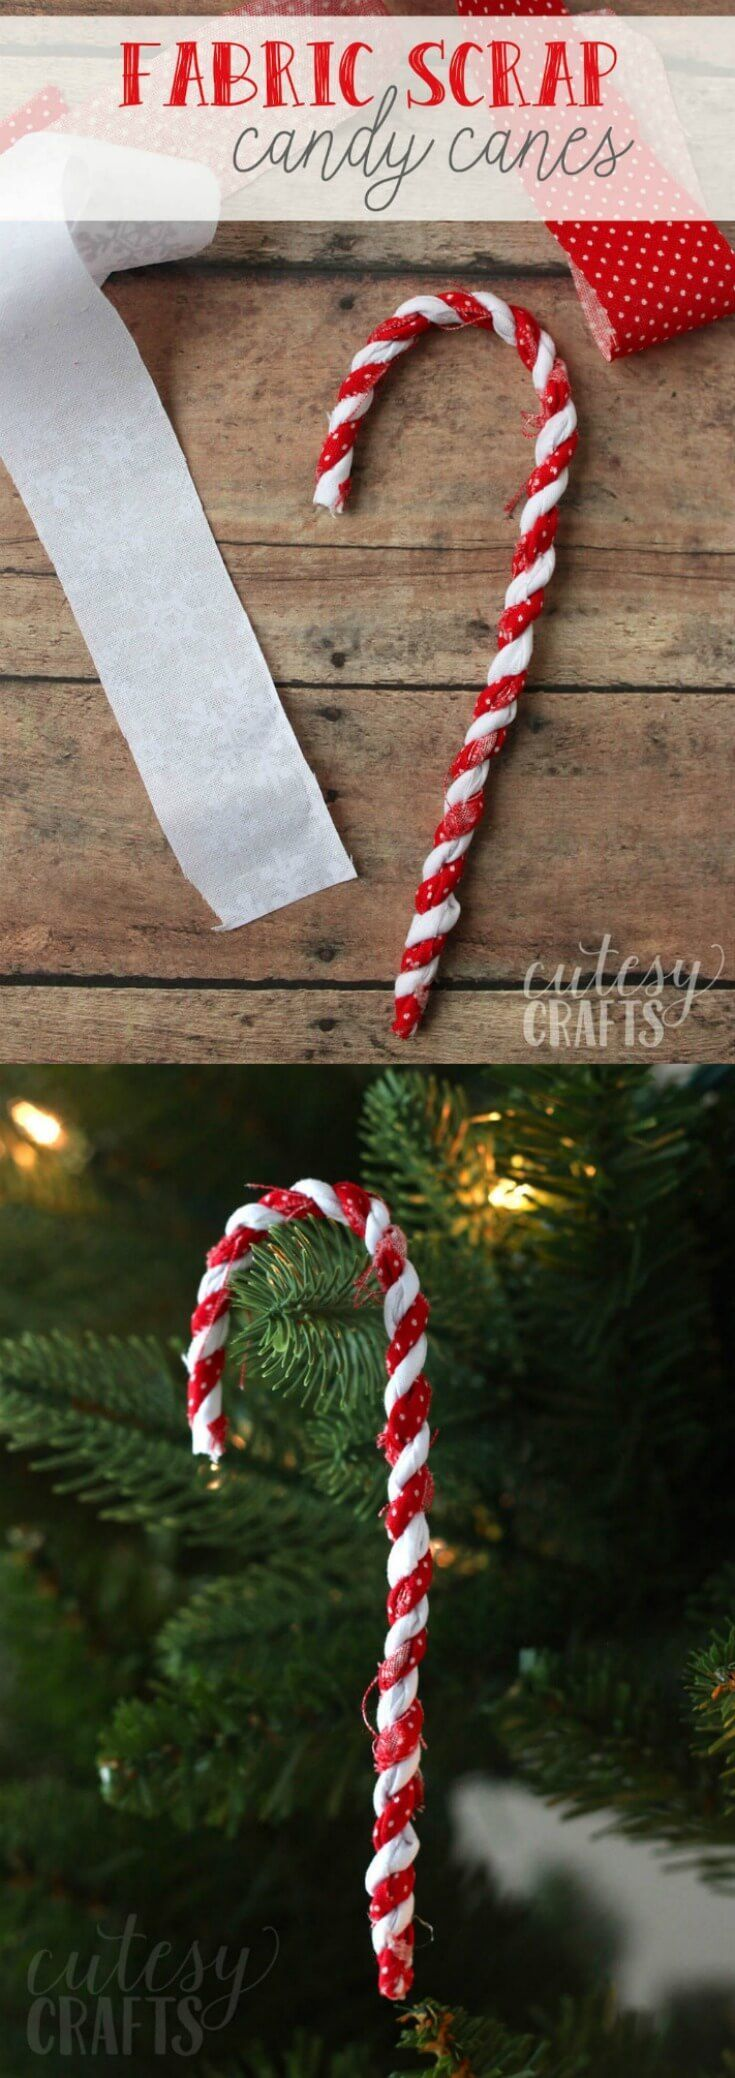 Make these candy cane ornaments out of fabric scraps! You can reuse these year after year. So perfect for your tree or decorating gifts. via @diy_candy